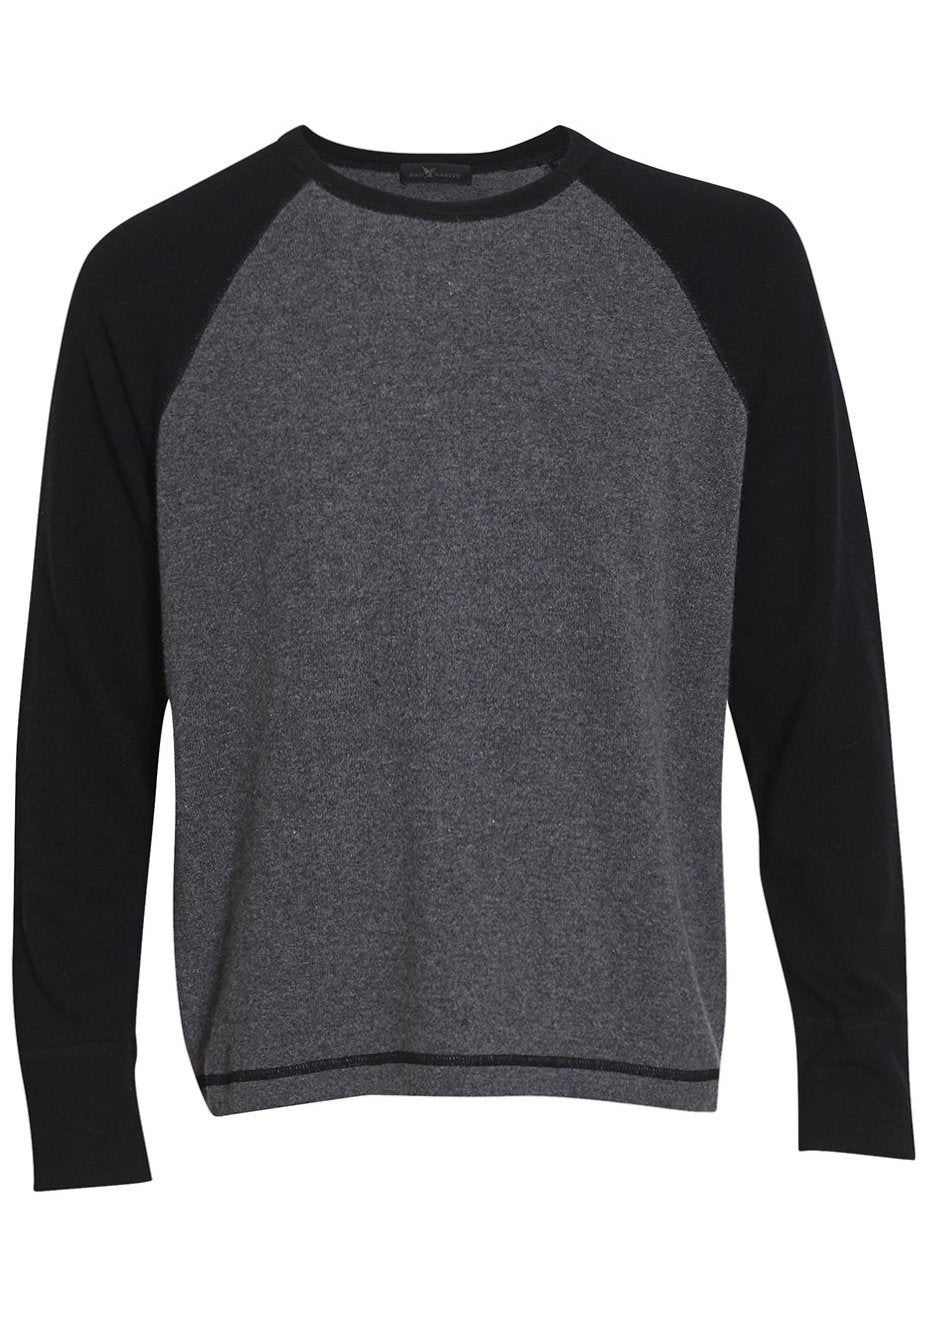 Black & Grey Rugby Cashmere Sweater